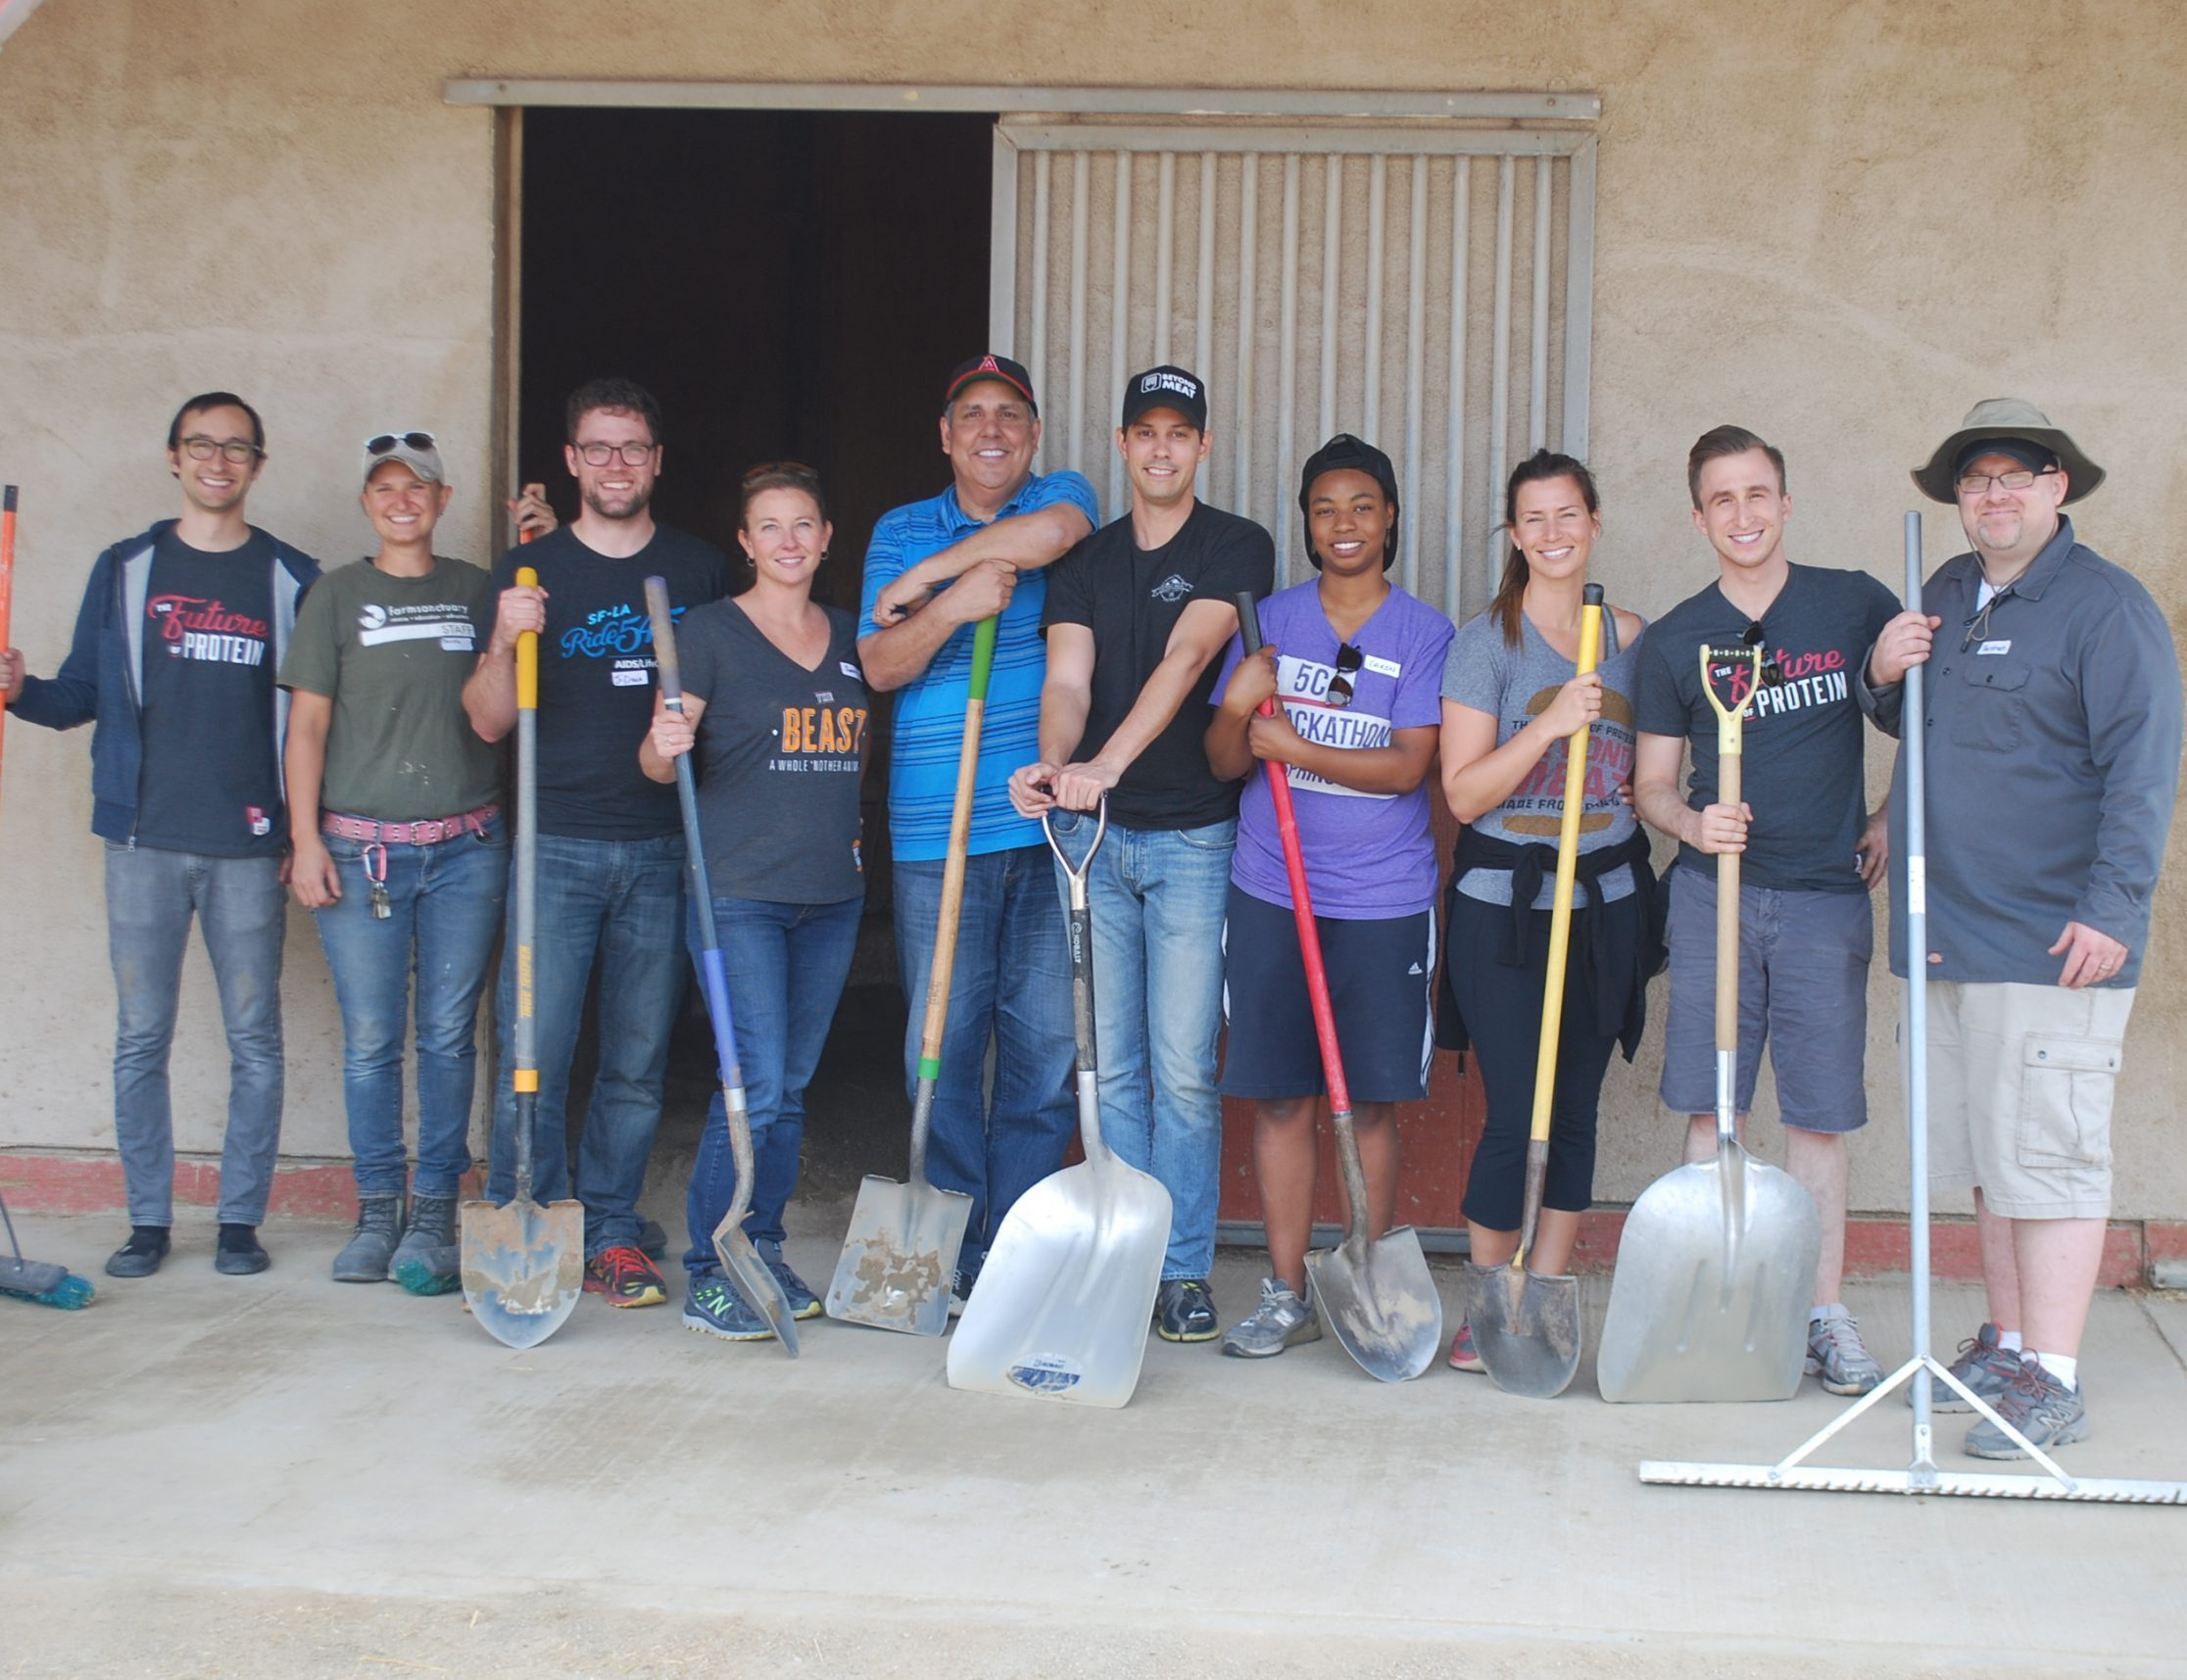 Beyond Meat volunteer work party at Farm Sanctuary